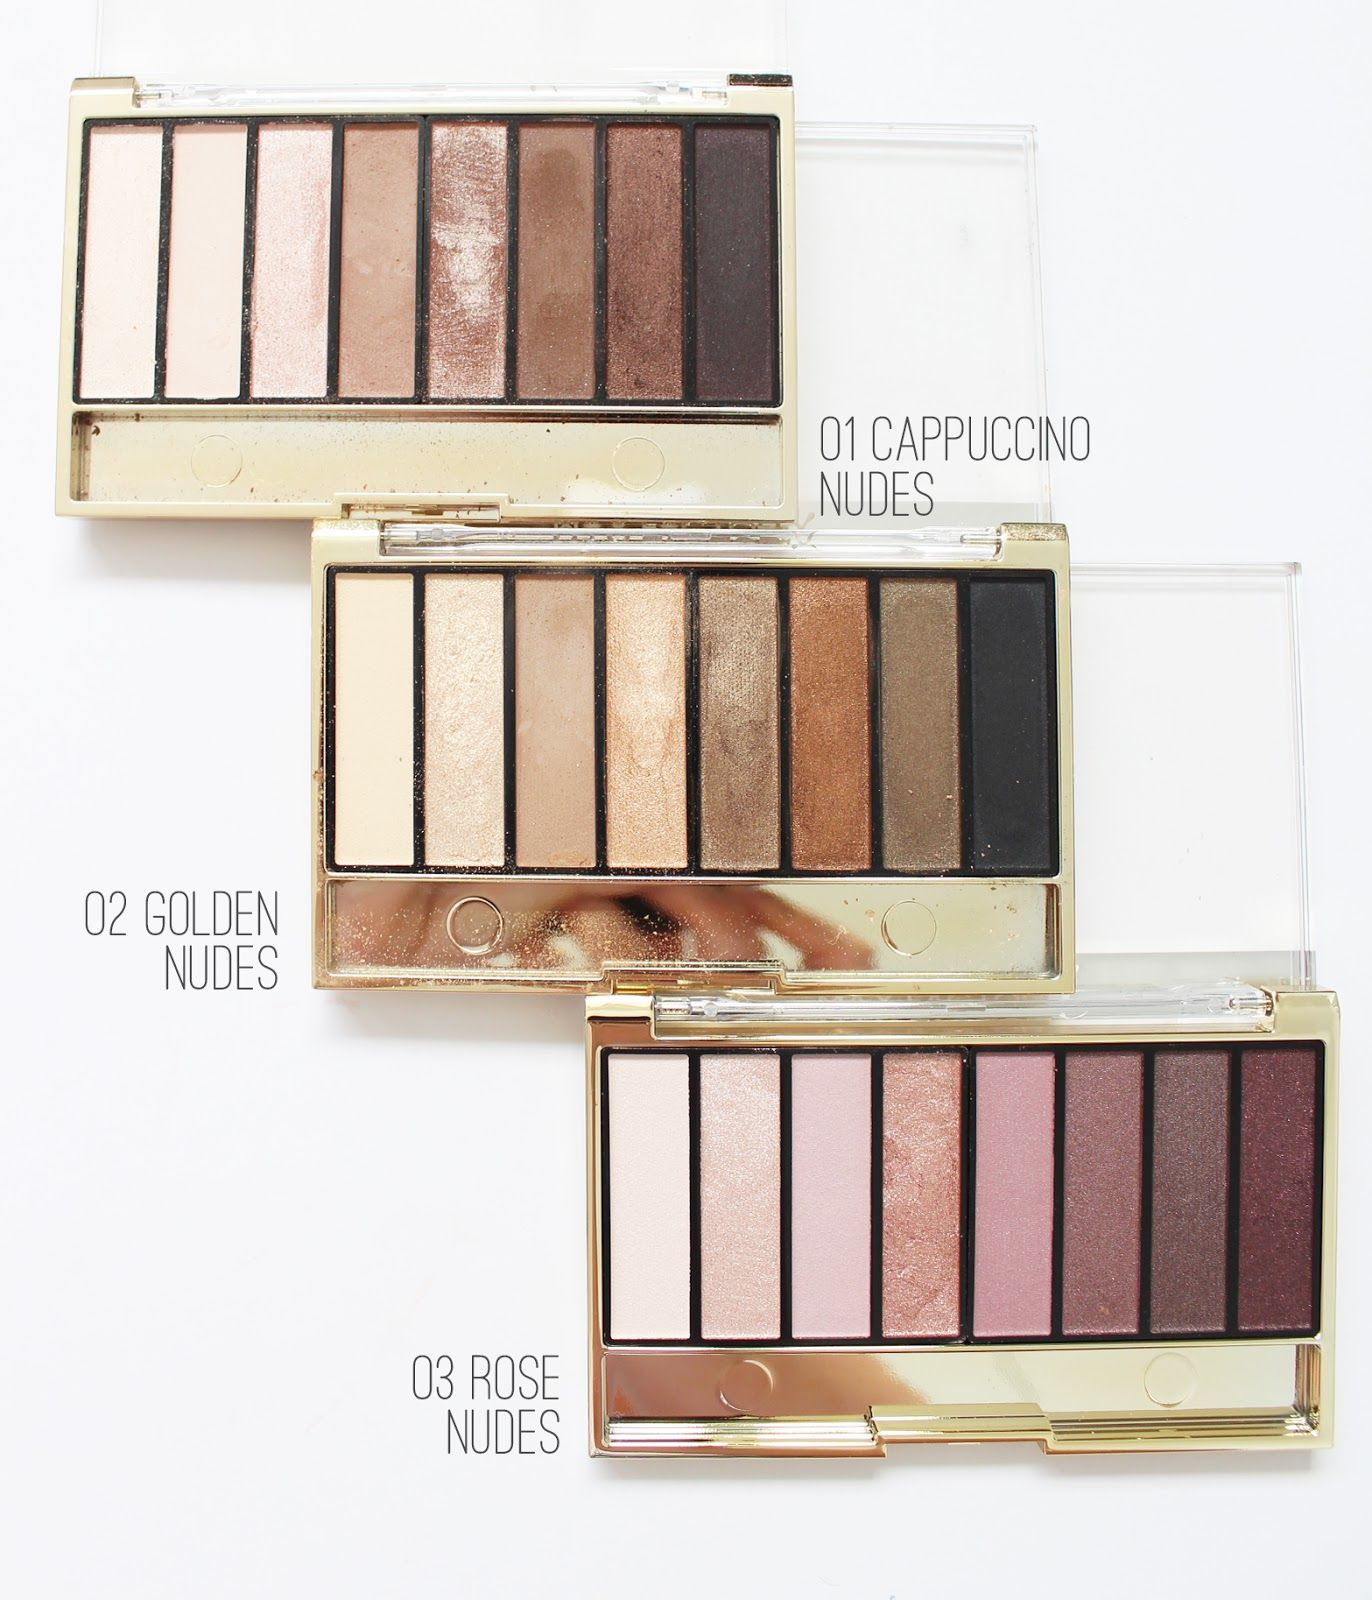 c64e9f56305 MAX FACTOR | Masterpiece Nude Palette Contouring Eye Shadows in 03 Rose  Nudes - Review + Swatches - CassandraMyee